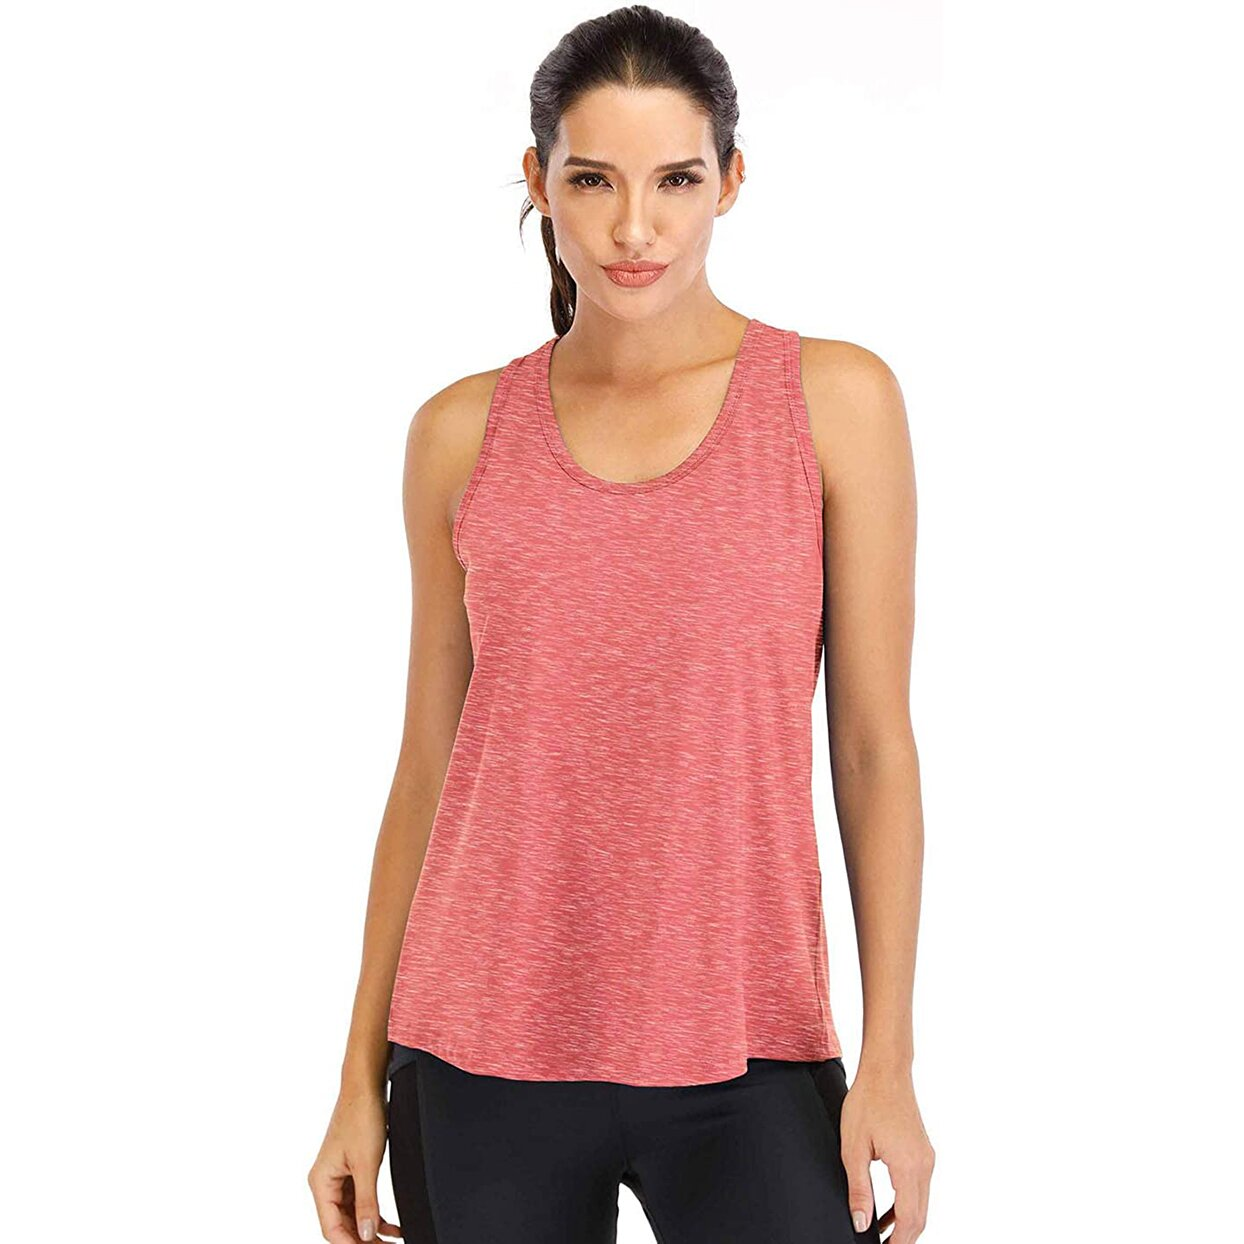 Fihapyli Workout Tops